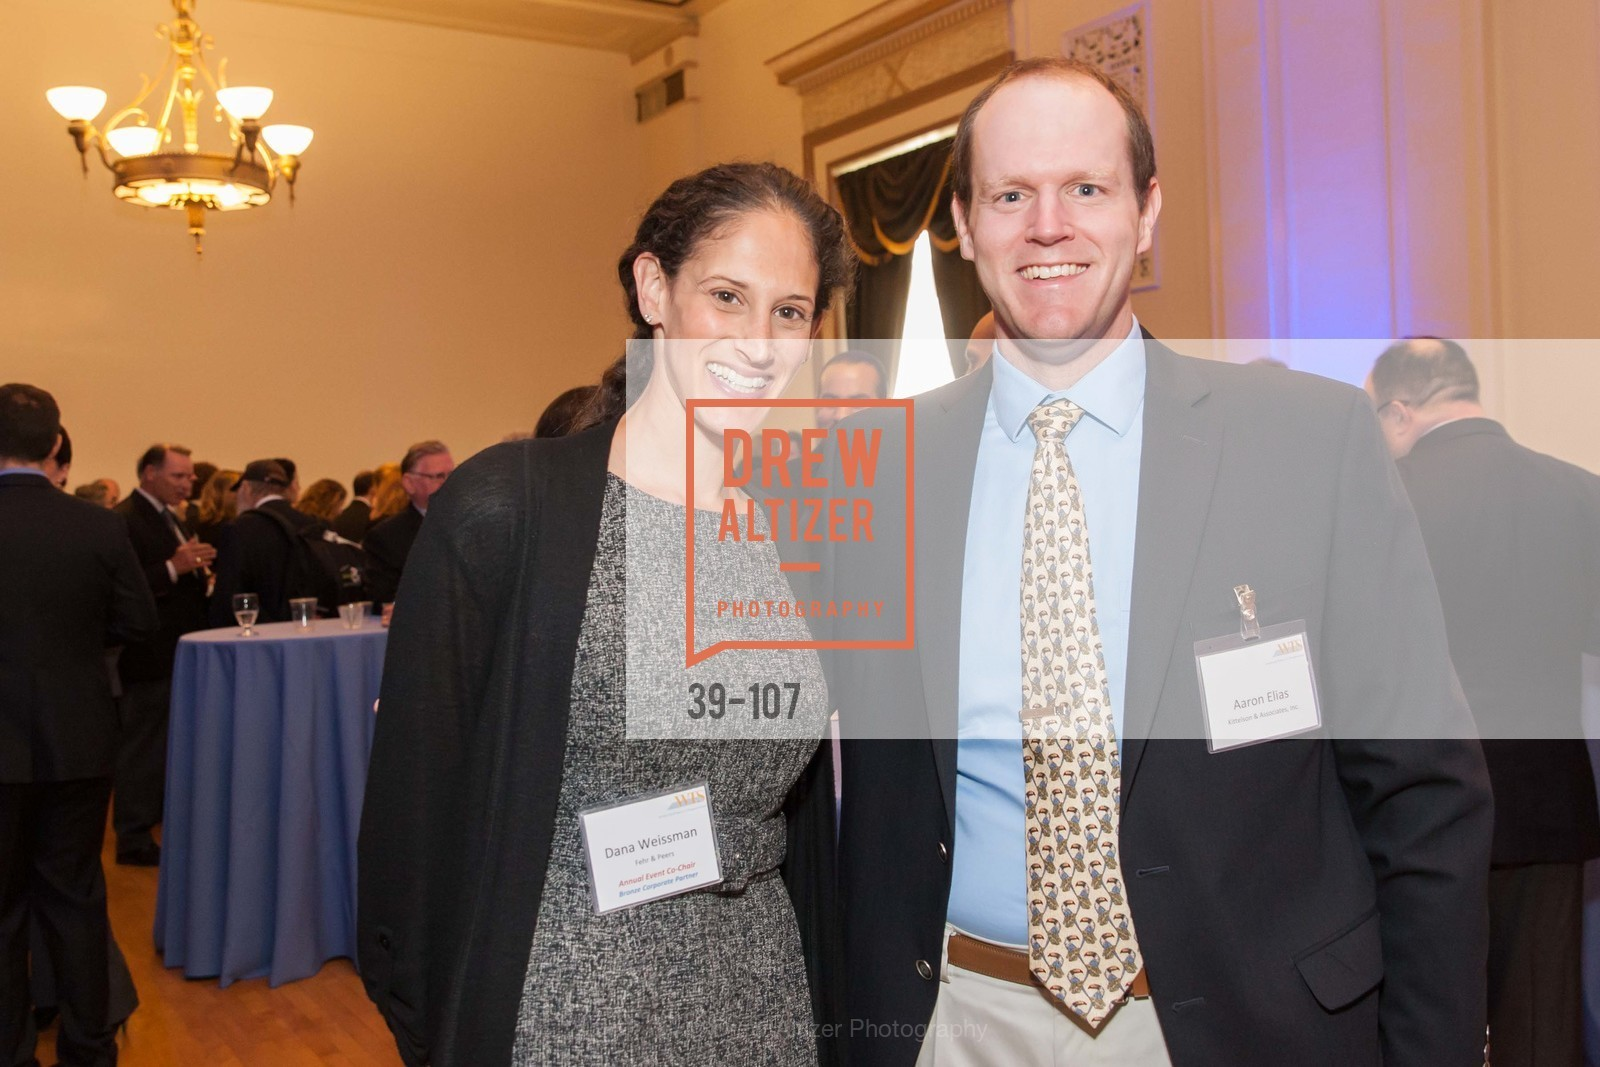 Tina Weissman, Aaron Elias,  Women's Transportation Seminar  SF Bay Chapter  Annual Scholarship and Awards , 1547 Lakeside Drive, May 13th, 2015,Drew Altizer, Drew Altizer Photography, full-service agency, private events, San Francisco photographer, photographer california